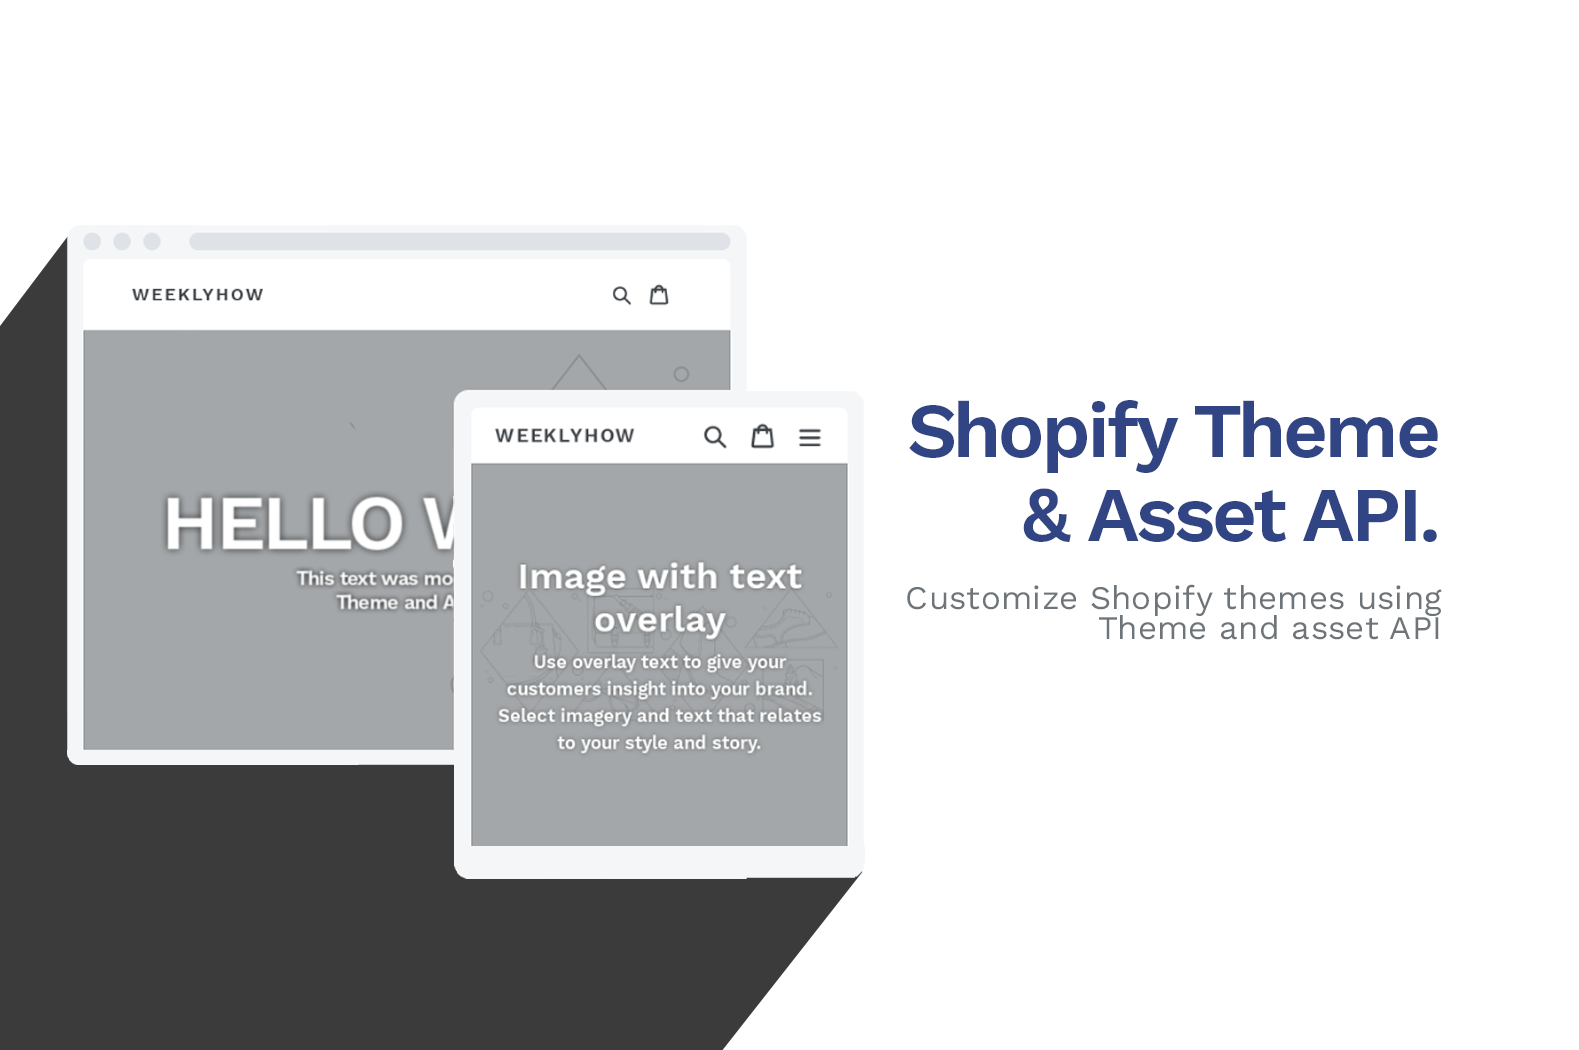 How To Customize Shopify Themes with Theme + Asset API